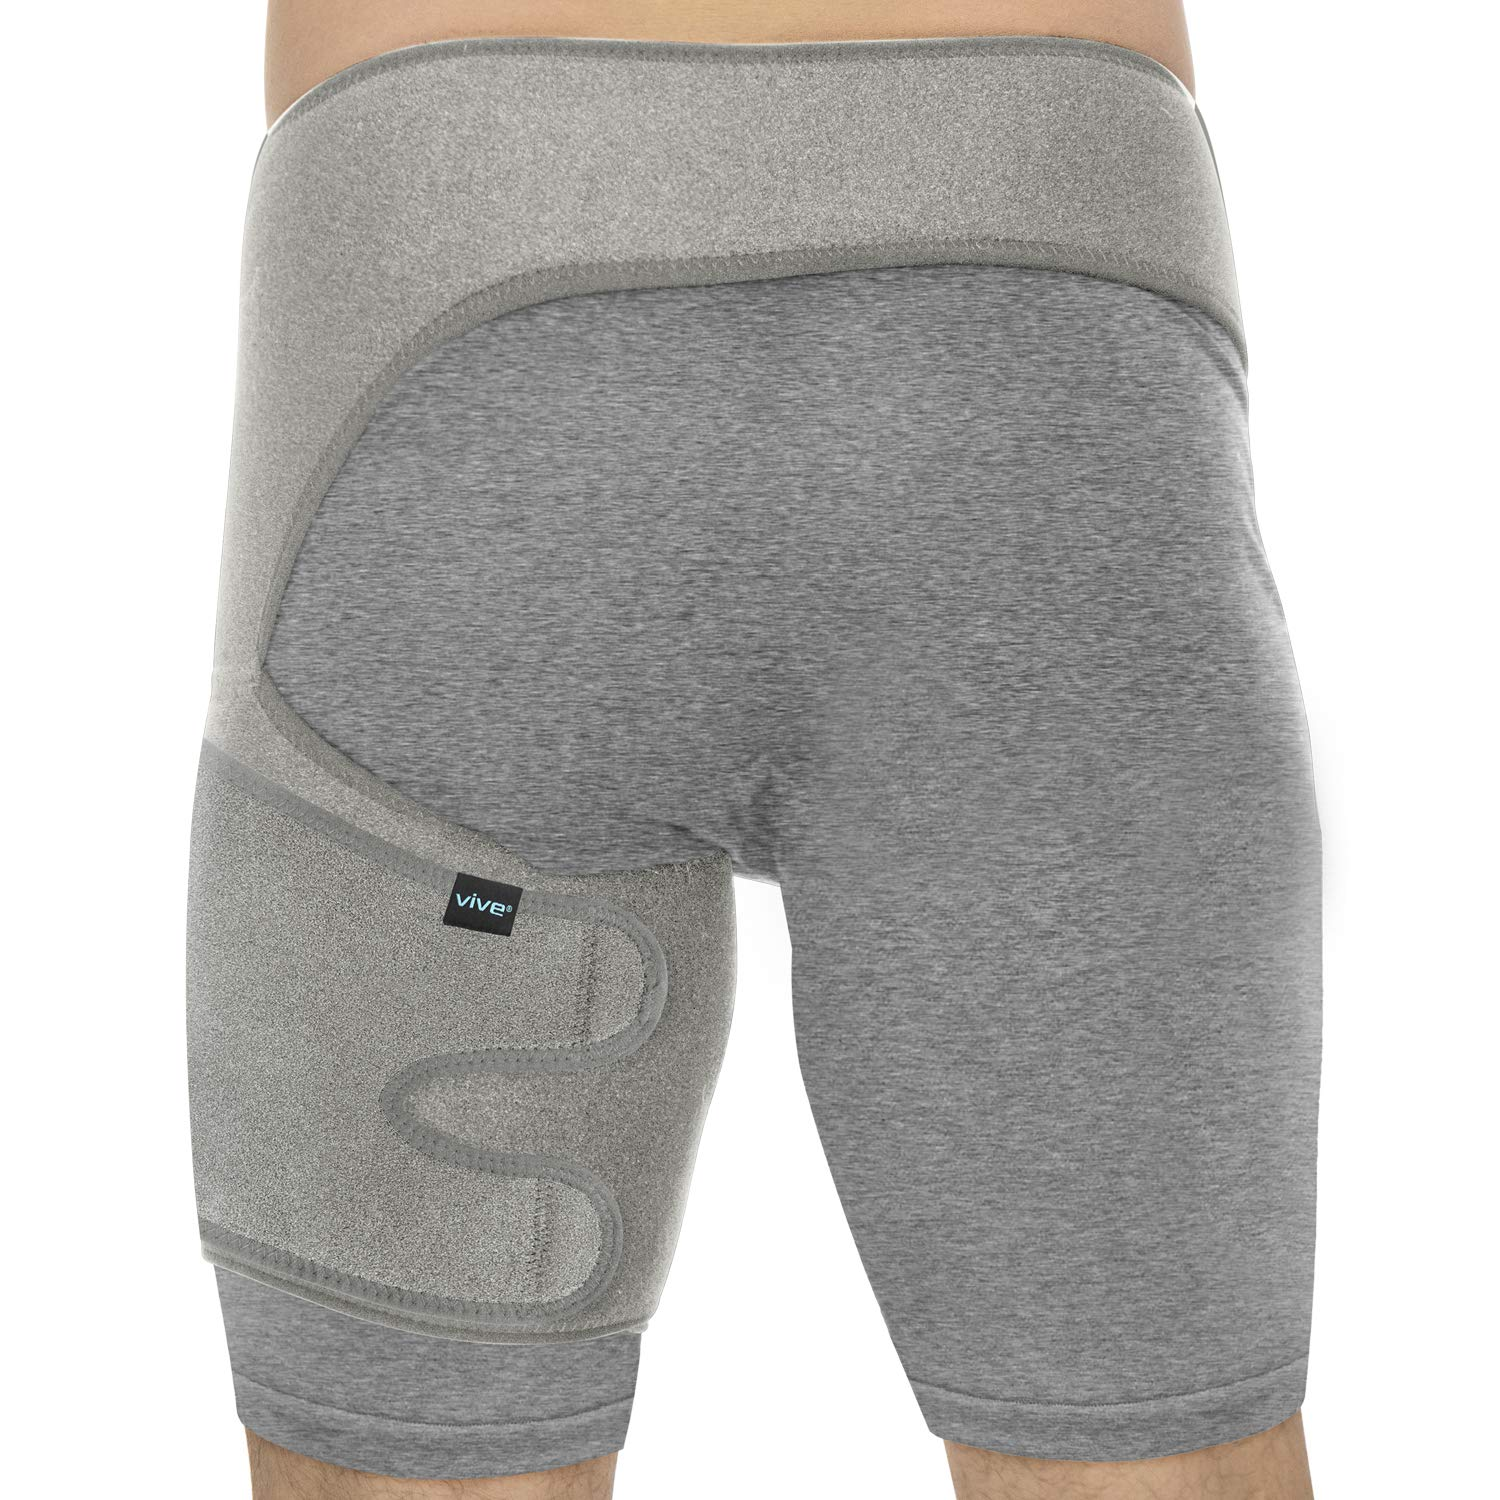 Vive Groin & Hip Brace - Sciatica Wrap for Men & Women - Compression Support for Nerve Pain Relief - Thigh, Hamstring Recovery for Joints, Flexor Strains, Pulled Muscles (Gray, Waist: 25''-48'')